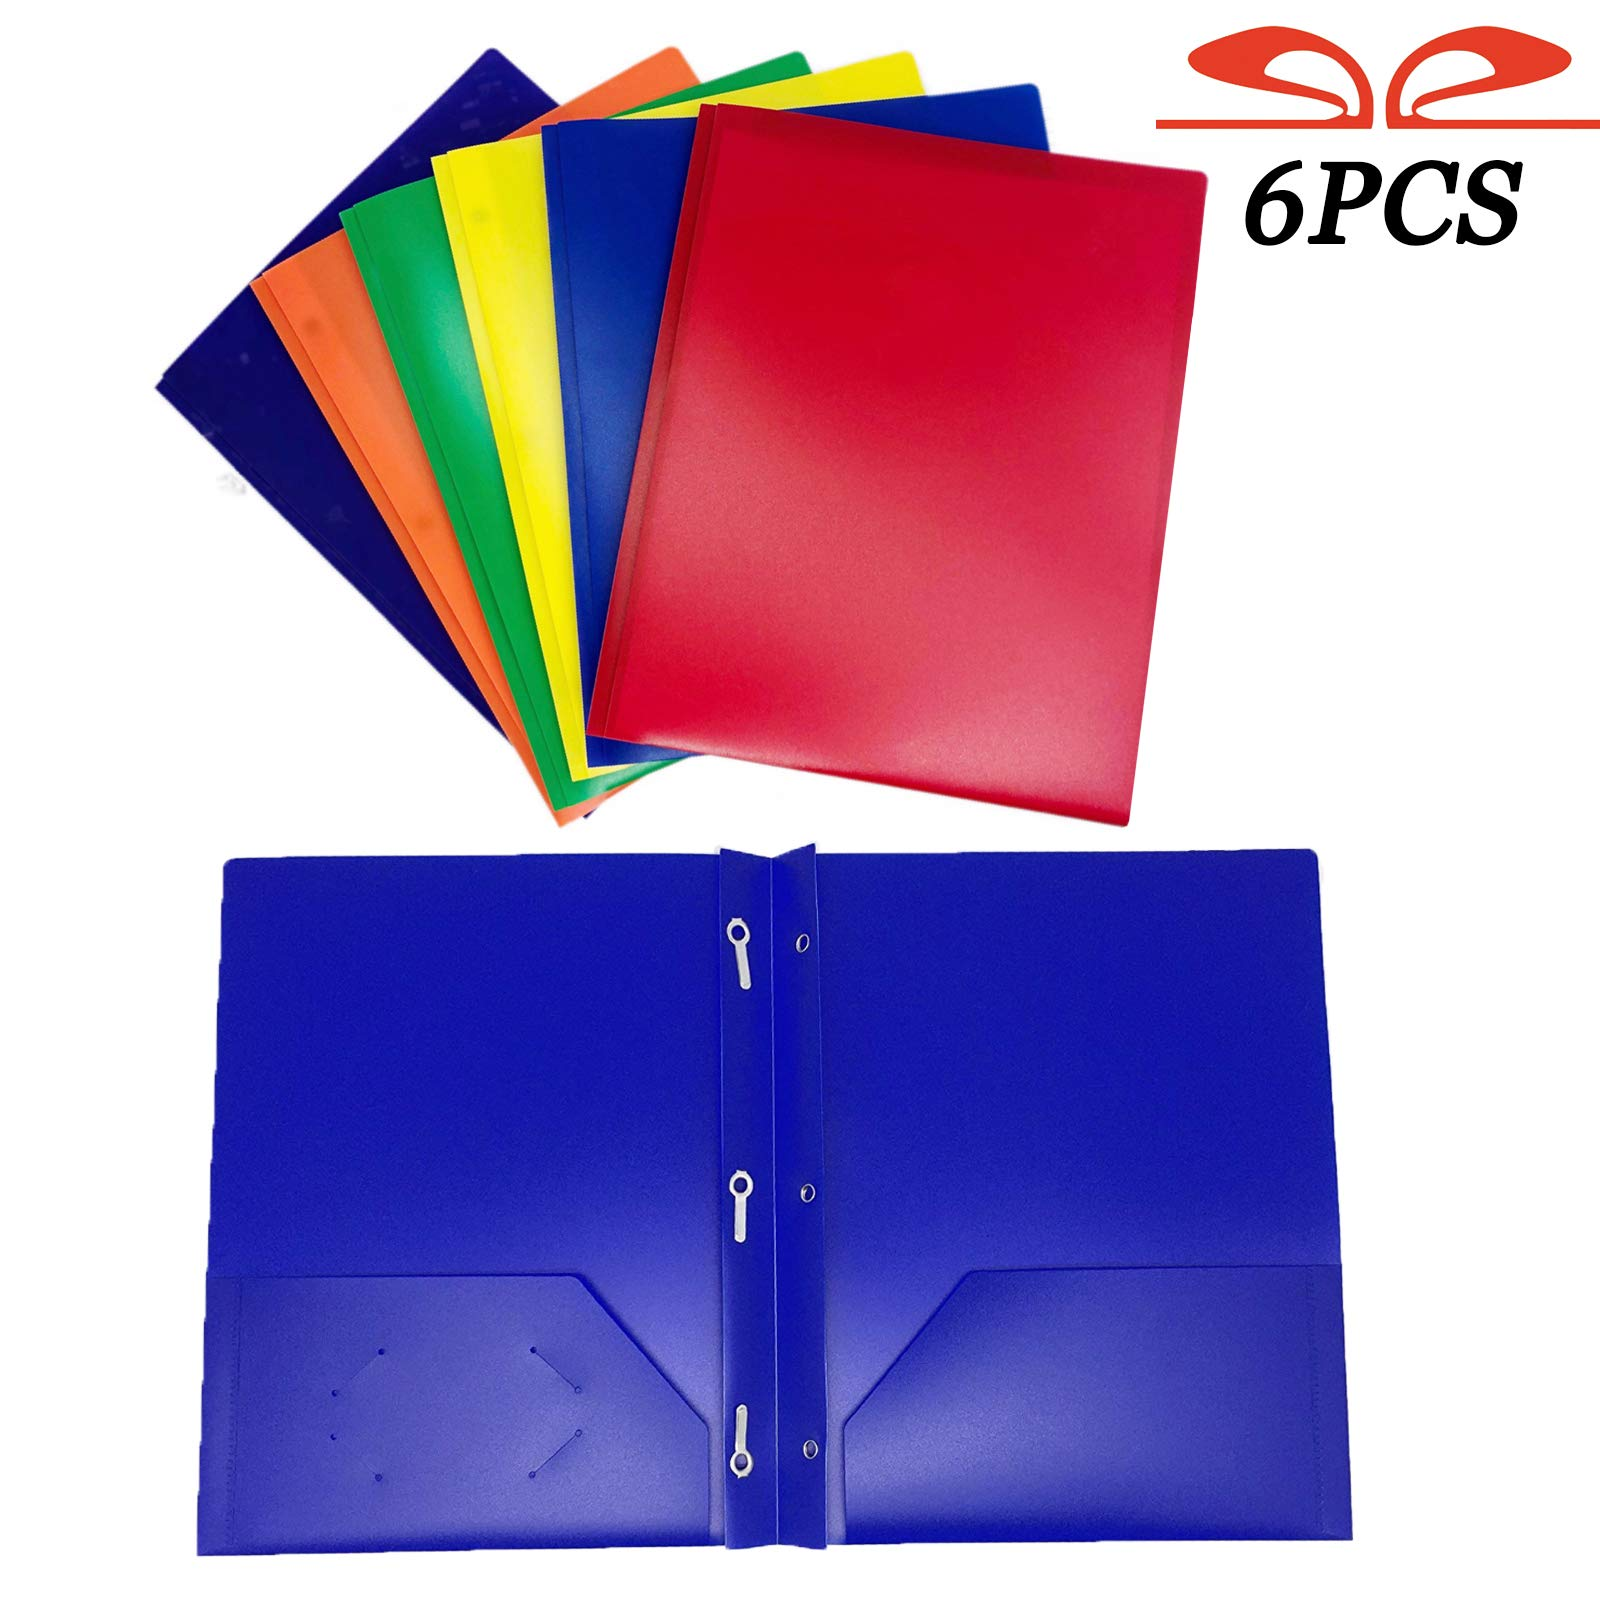 GIFTEXPRESS Pack of 6, Assorted Solid Color 3-Prong Poly Portfolio with 2 Pockets, Two Pocket Poly File Folder, 3 Hole Plastic Folder-Strong and Durable Plastic by GiftExpress